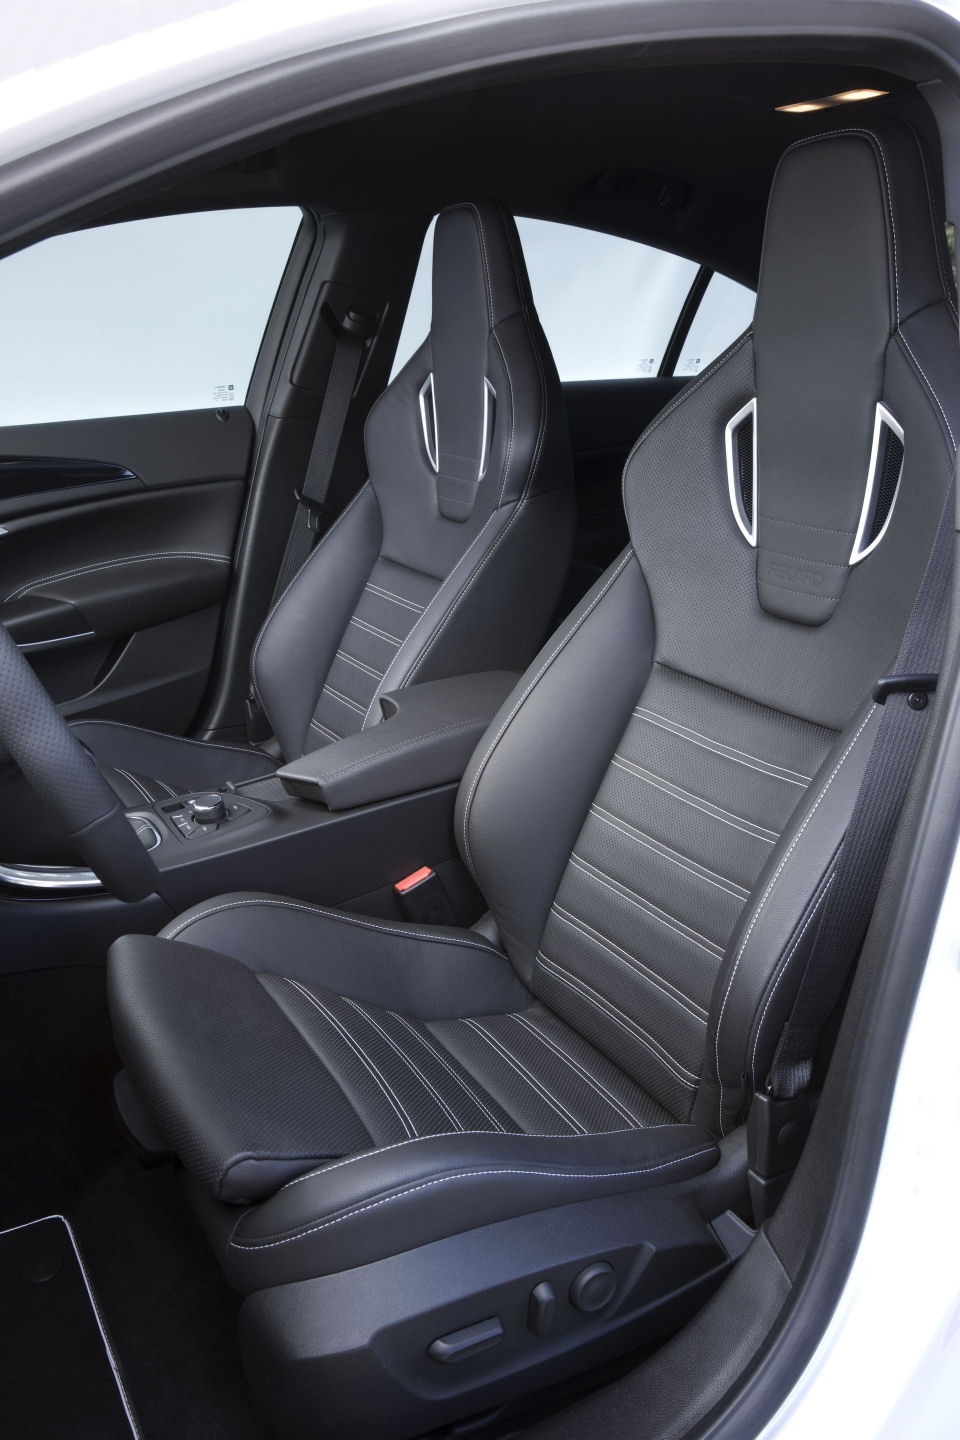 Galerie Images Intérieur - Opel Insignia OPC (2010) - http://opel ...